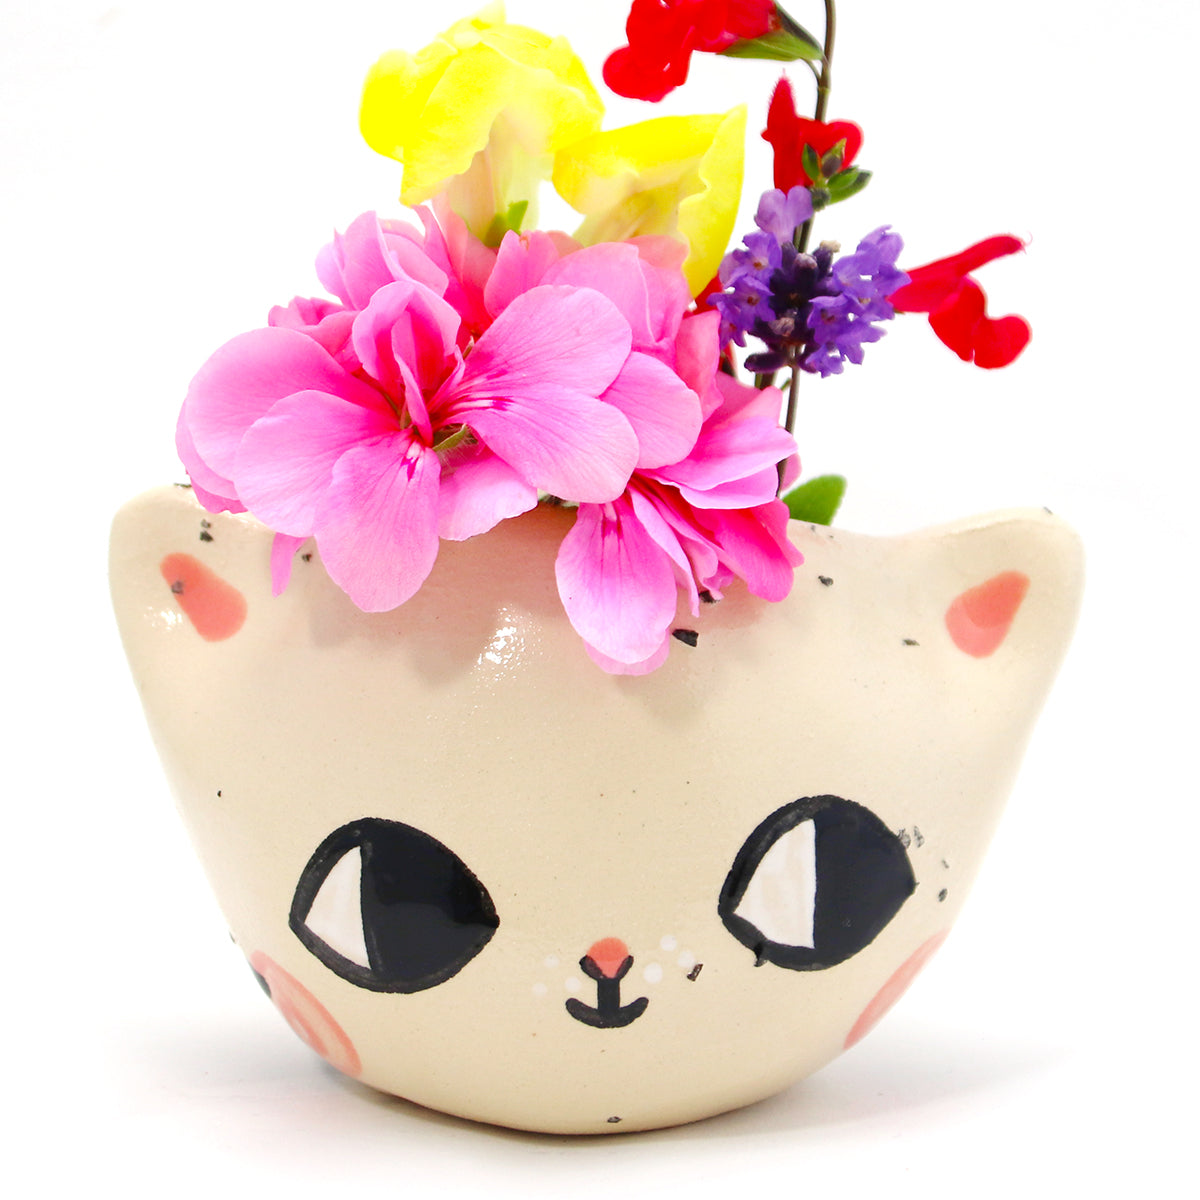 Ceramic Kitty Planter #1138 - L